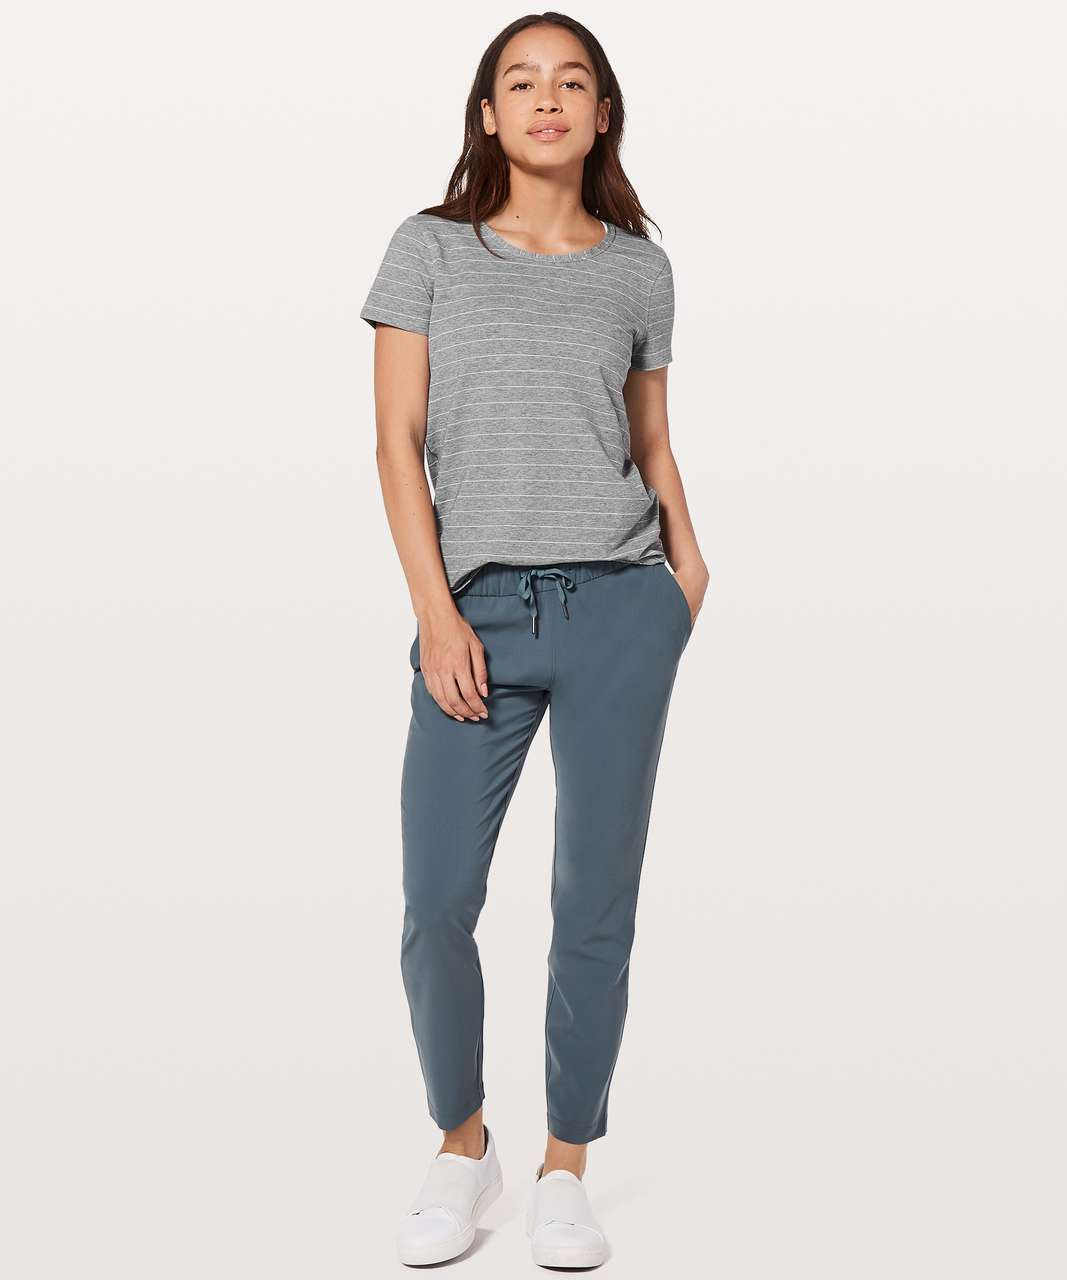 Lululemon Love Crew III - Short Serve Stripe Heathered Medium Grey White